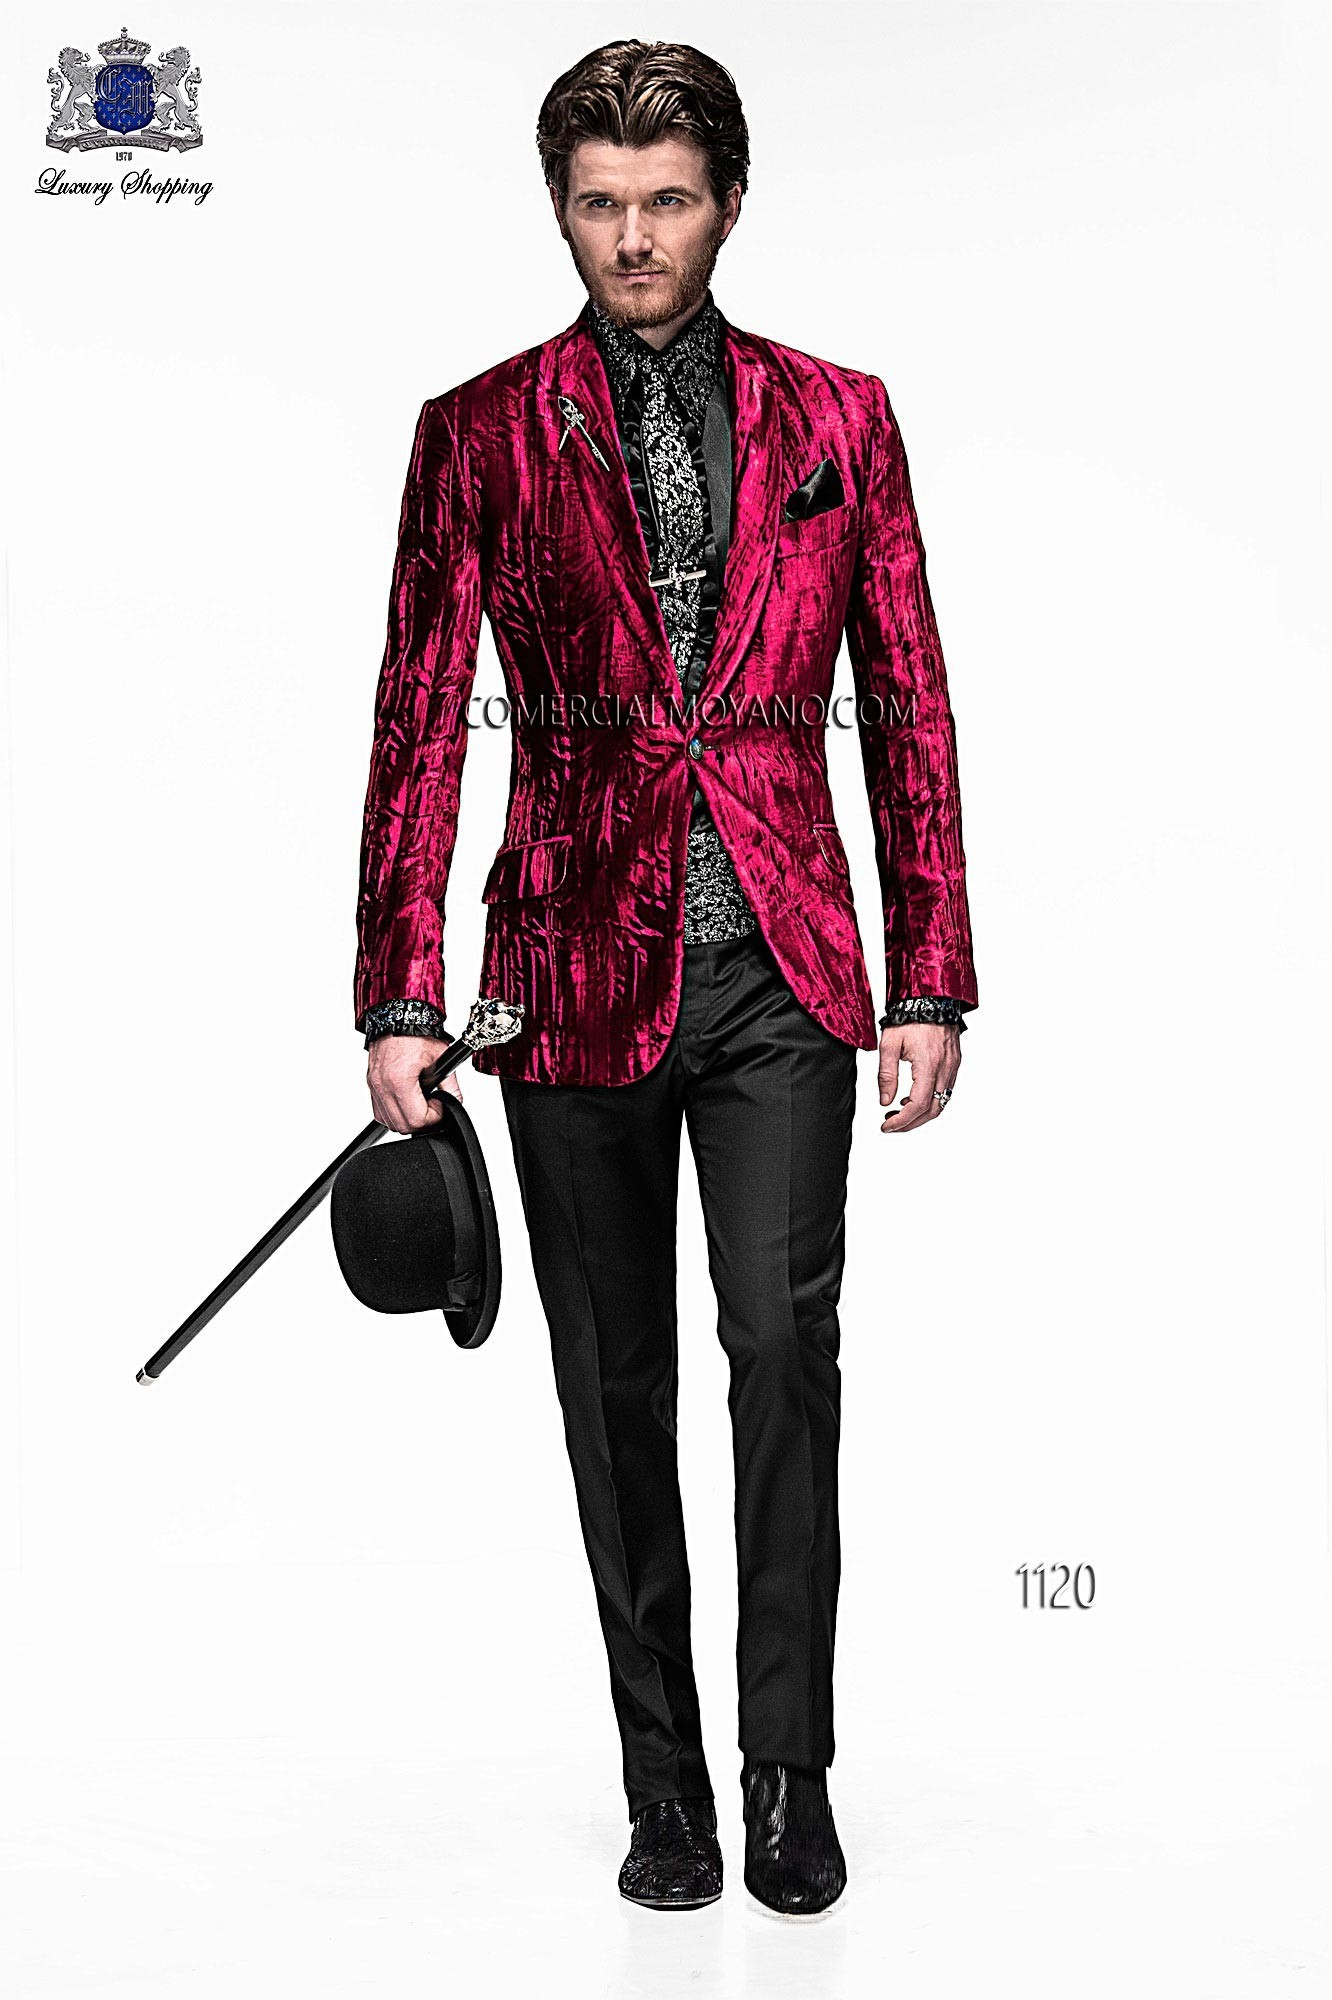 Emotion red men wedding suit model 1120 Ottavio Nuccio Gala